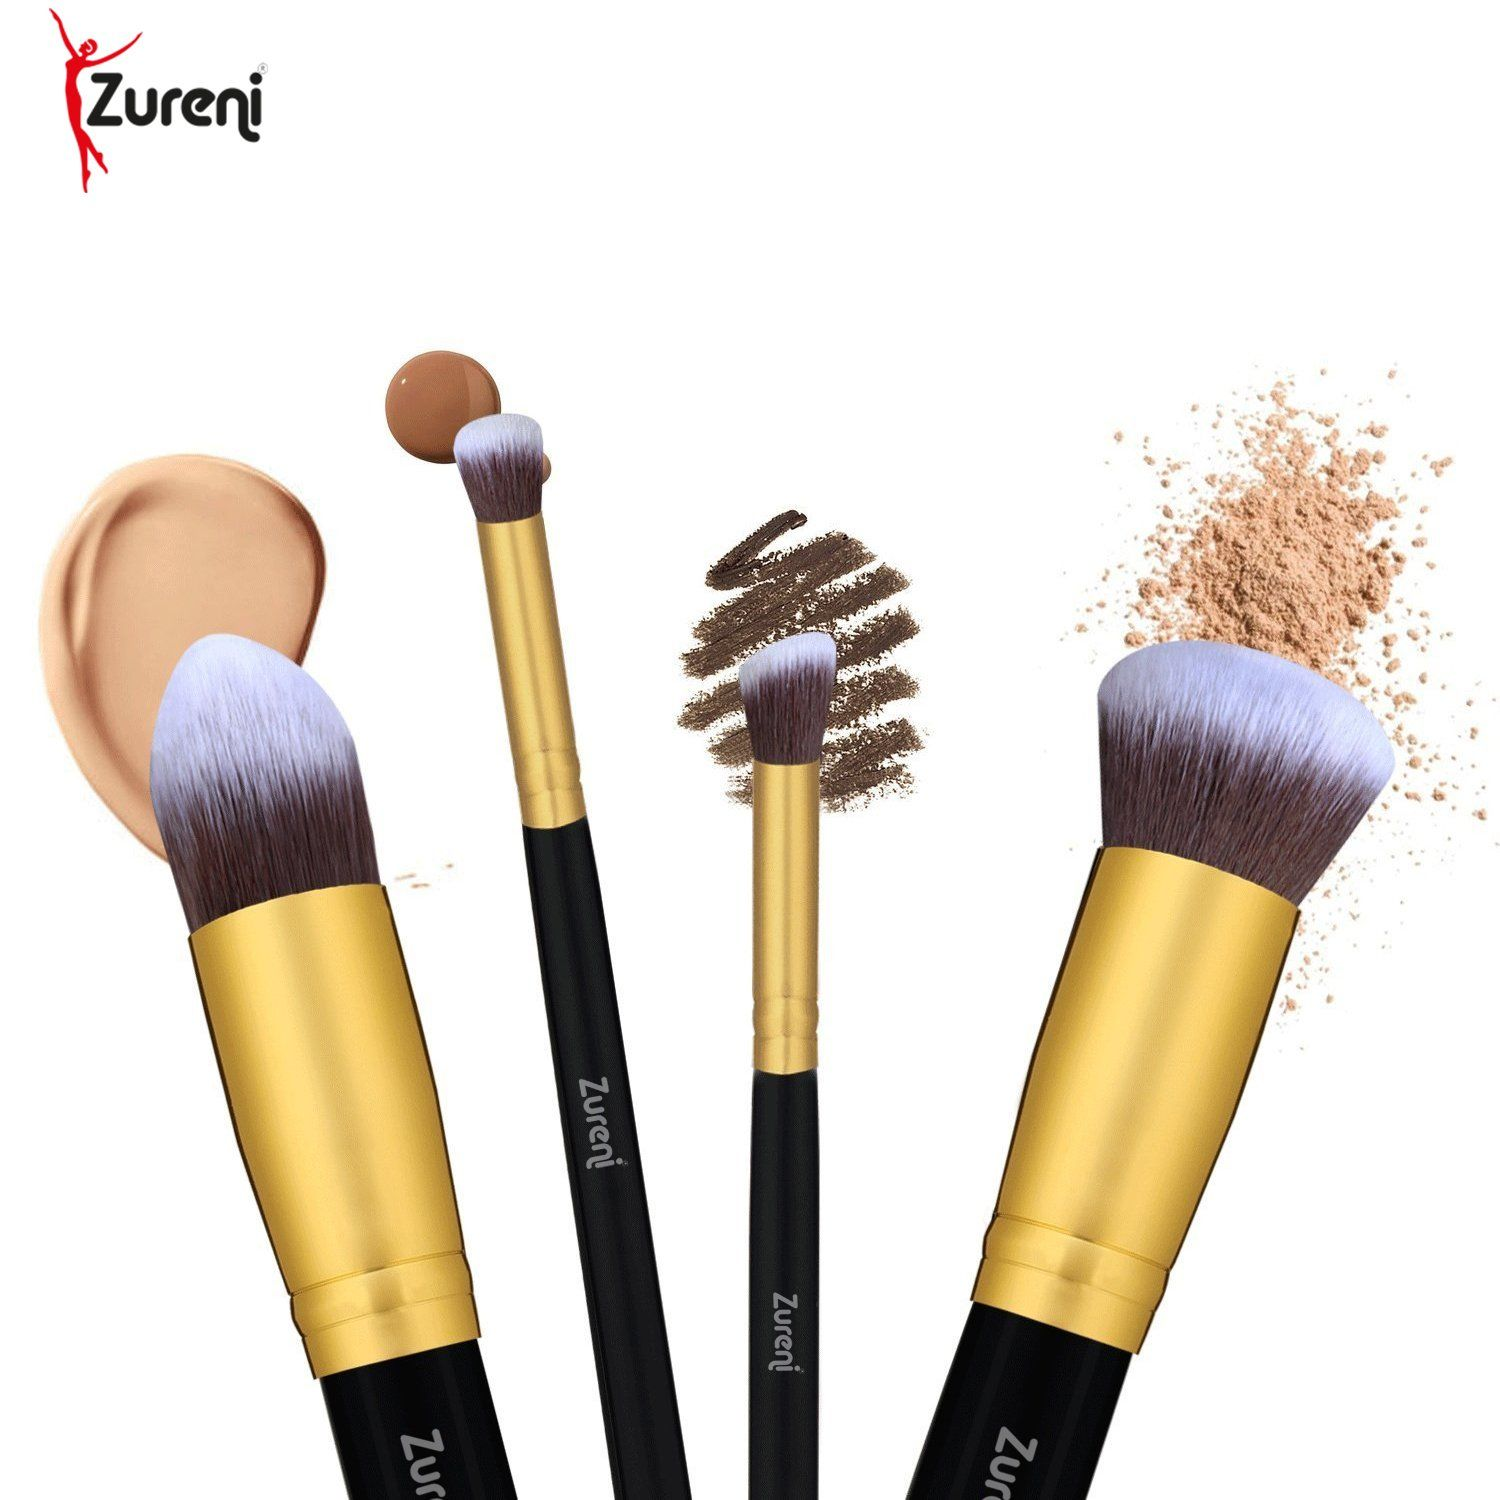 Zureni Professional Makeup Brushes Kit #Zureni #Makeupbrusheskit #makeupbrushesset #brushset #makeupbrush #makeupbrushes #foundationbrush #makeupproducts #makeupessentials #makeupaccessories #groomingaccessories #groomingkit #facecleaningbrush #makeupcollection #makeuplovers #makeupbrand #makeupcommunity #makeupobsessed #makeupaddiction